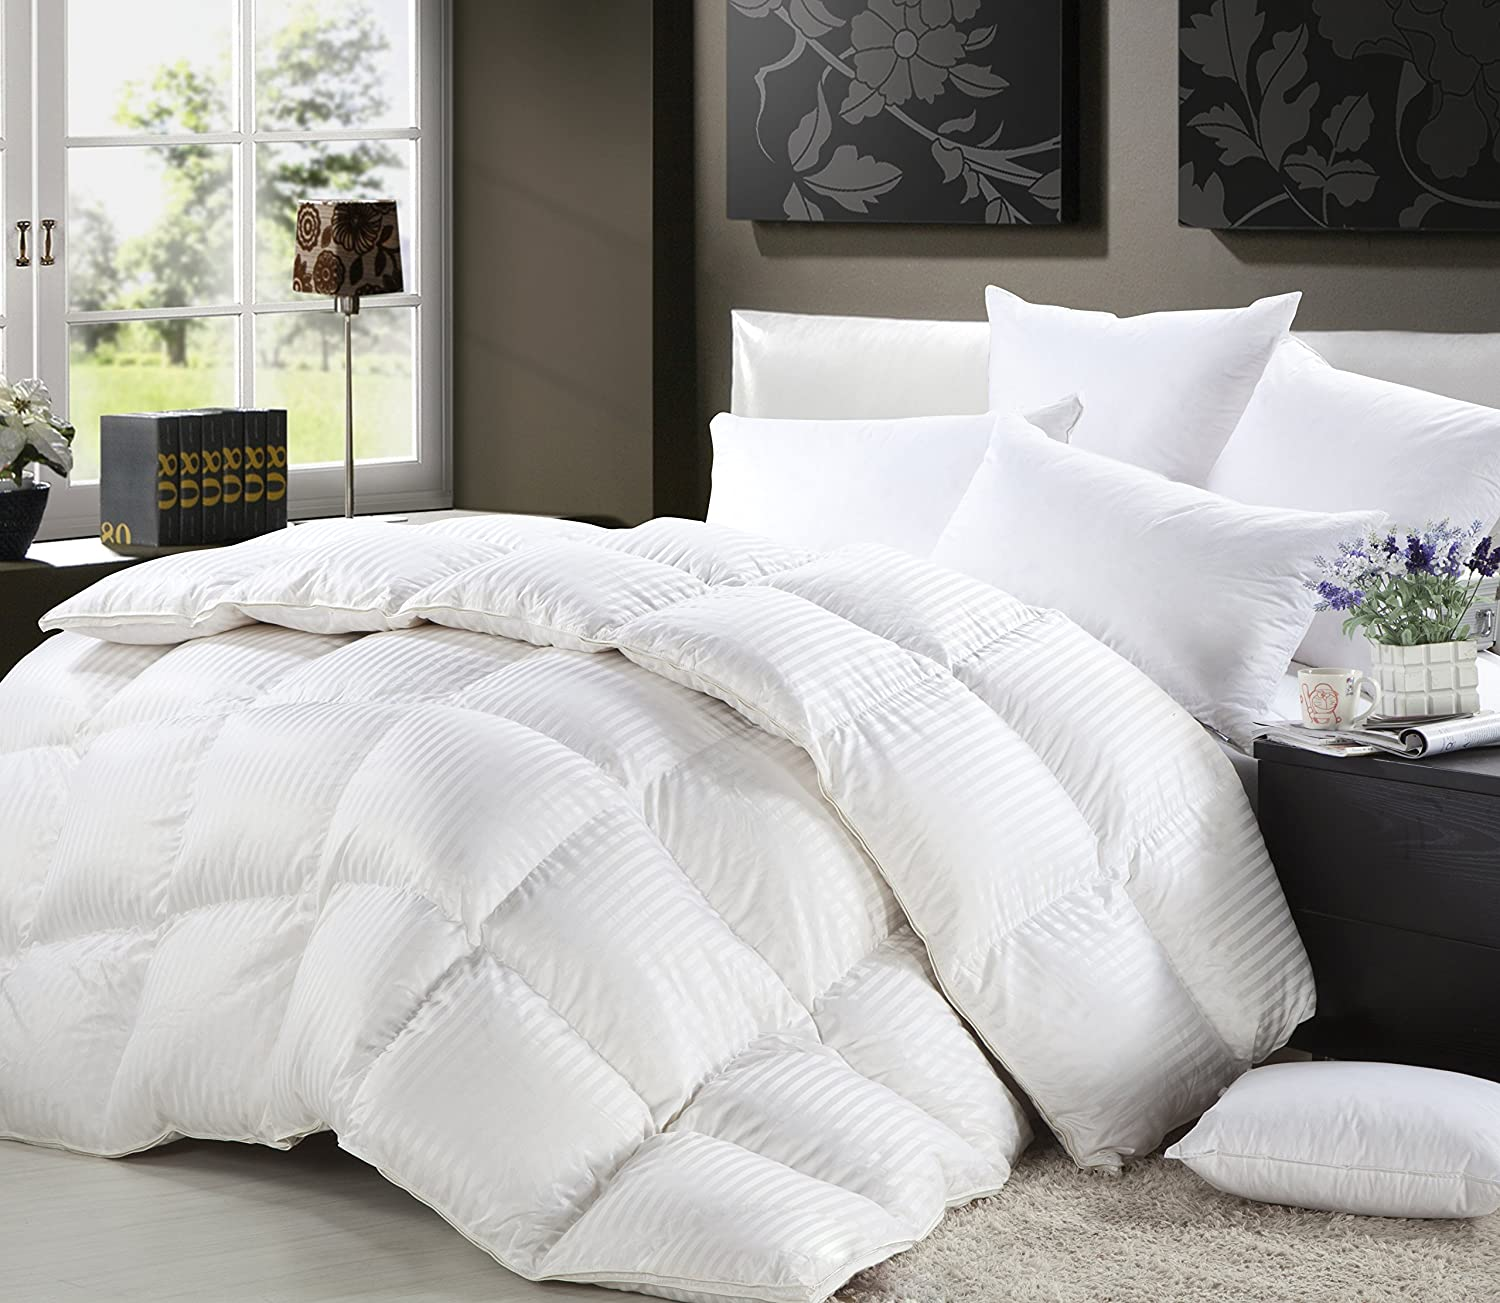 amazoncom goose down comforter   threadcount cal king size siberiangoose down comforter white stripe  egyptian cotton fp . amazoncom goose down comforter   threadcount cal king size